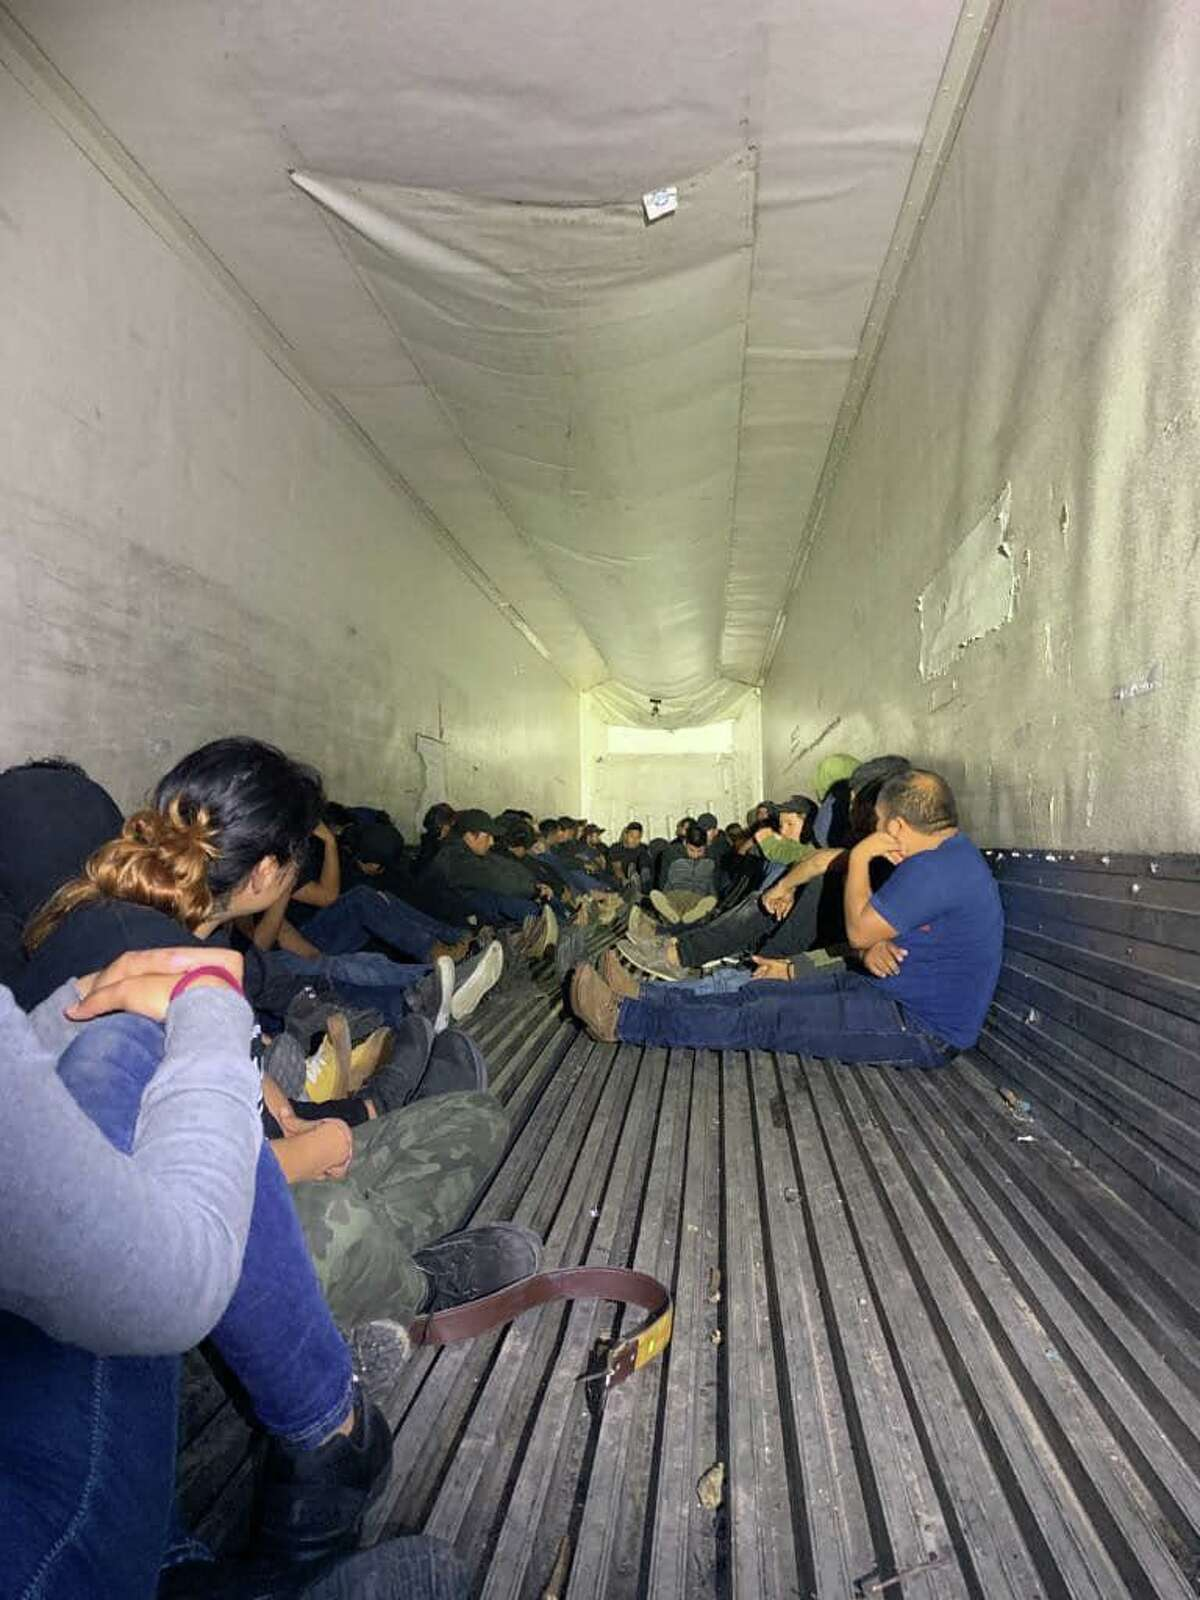 Federal and local authorities discovered 63 migrants inside a trailer.